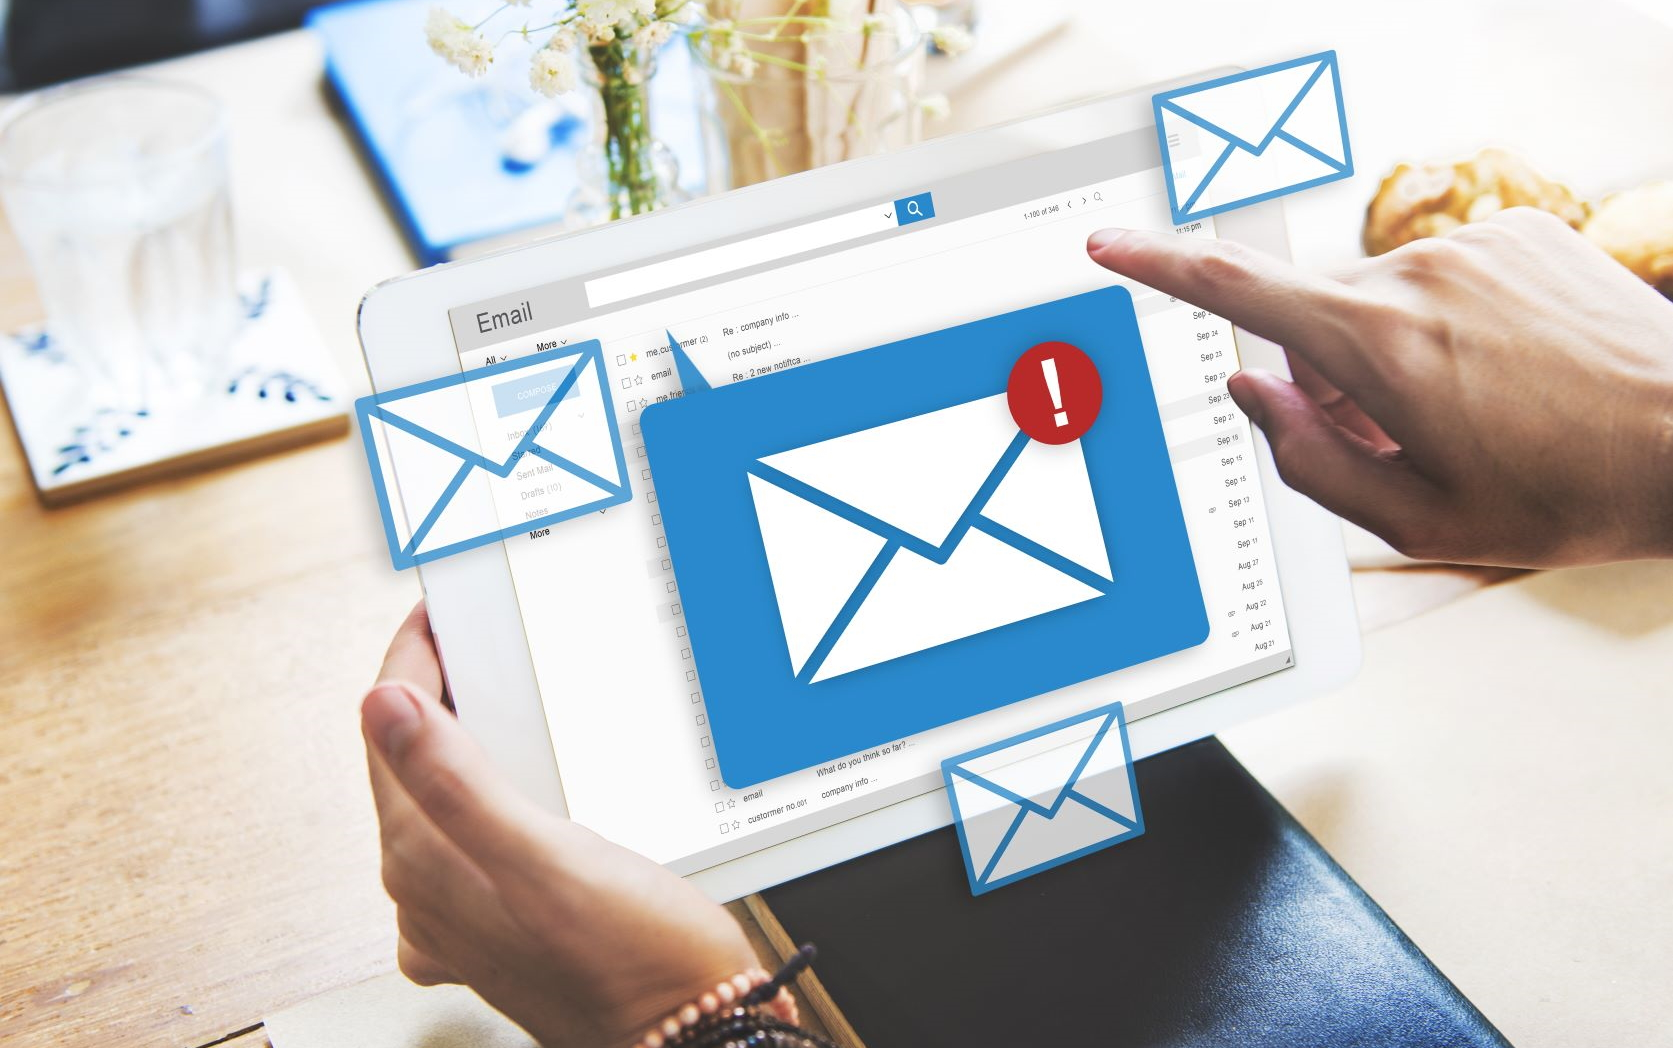 Email mailsync CRM feature